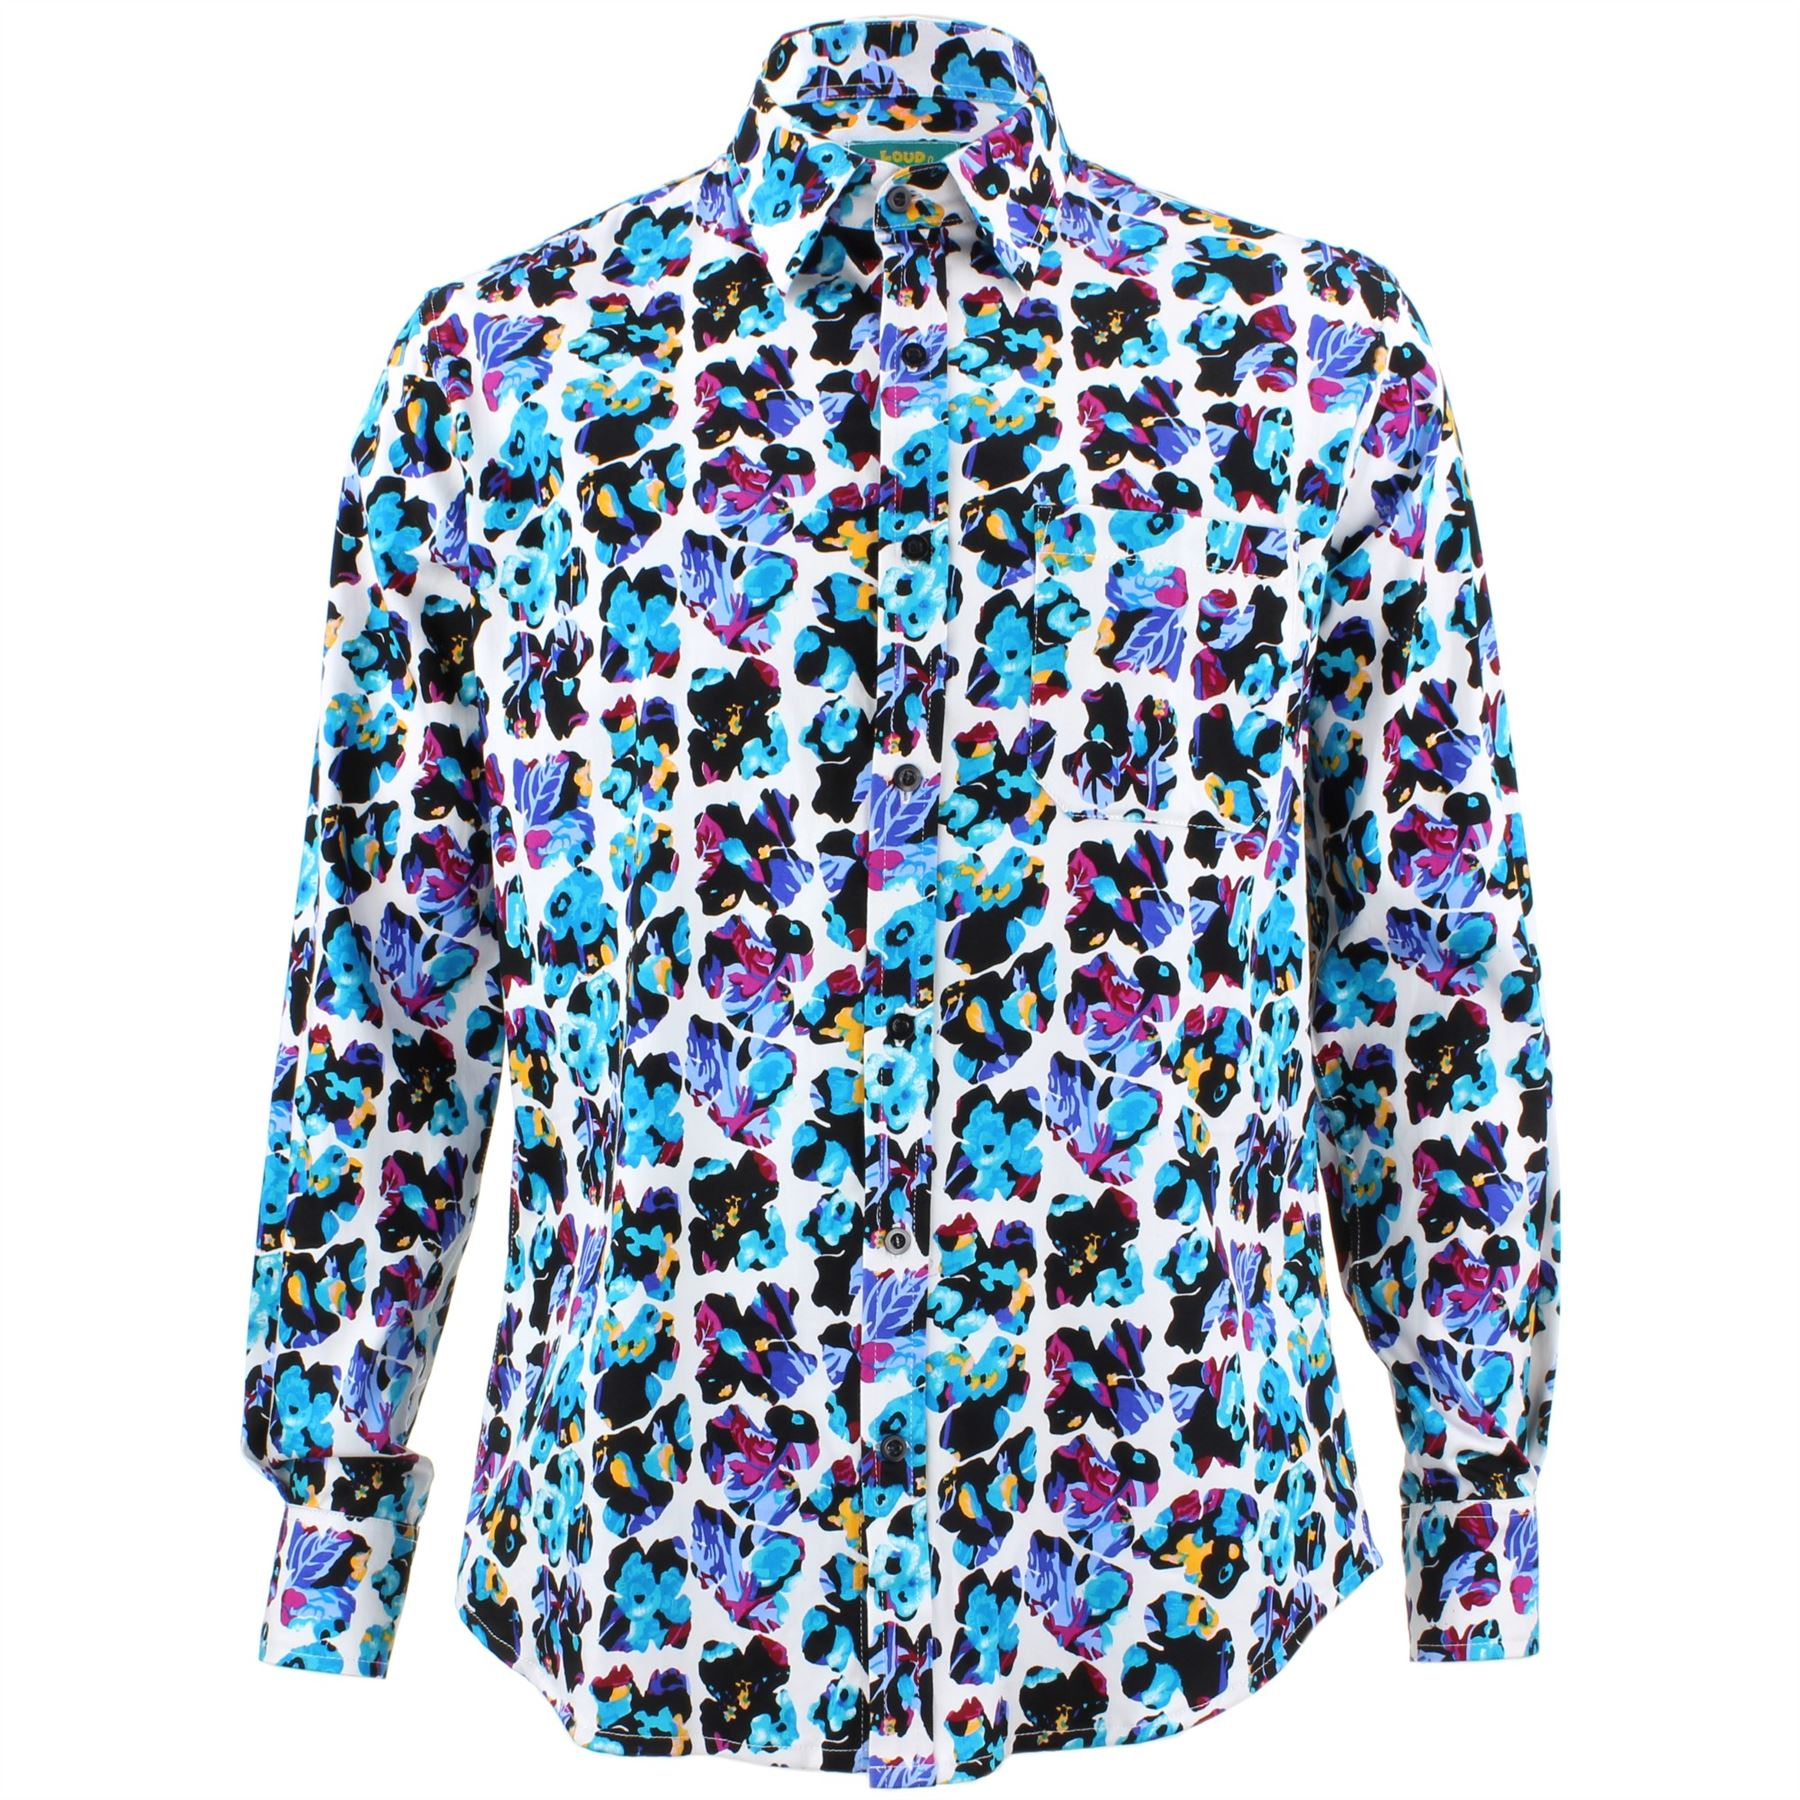 Mens Loud Shirt Retro Psychedelic Funky Party TAILORED FIT Abstract Butterfly